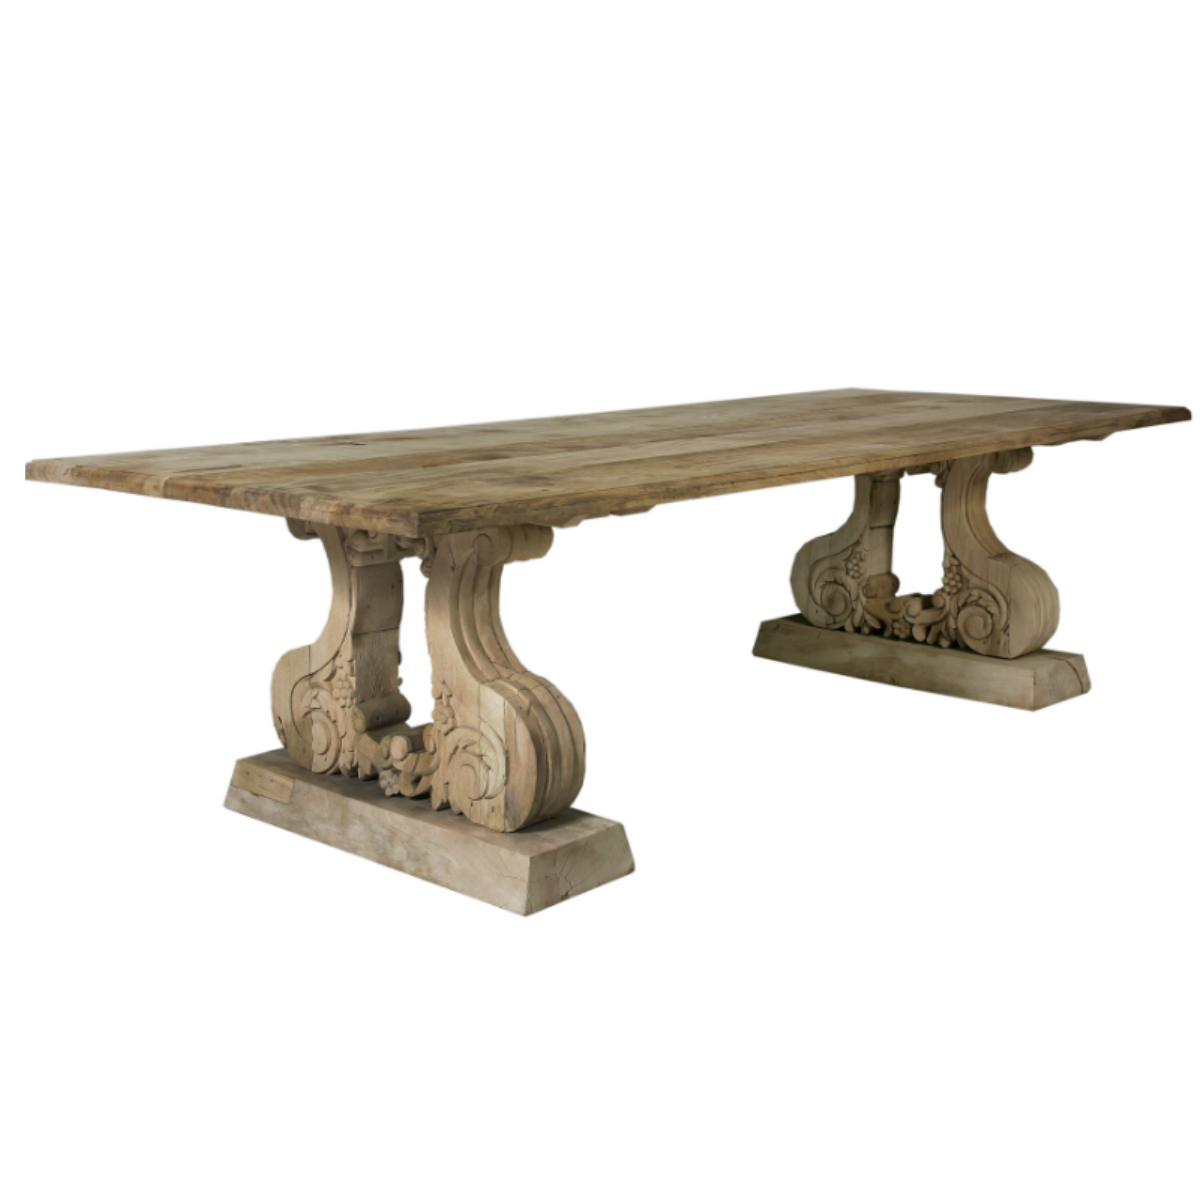 Cut Out Carved Leg With Table Top Dining Table